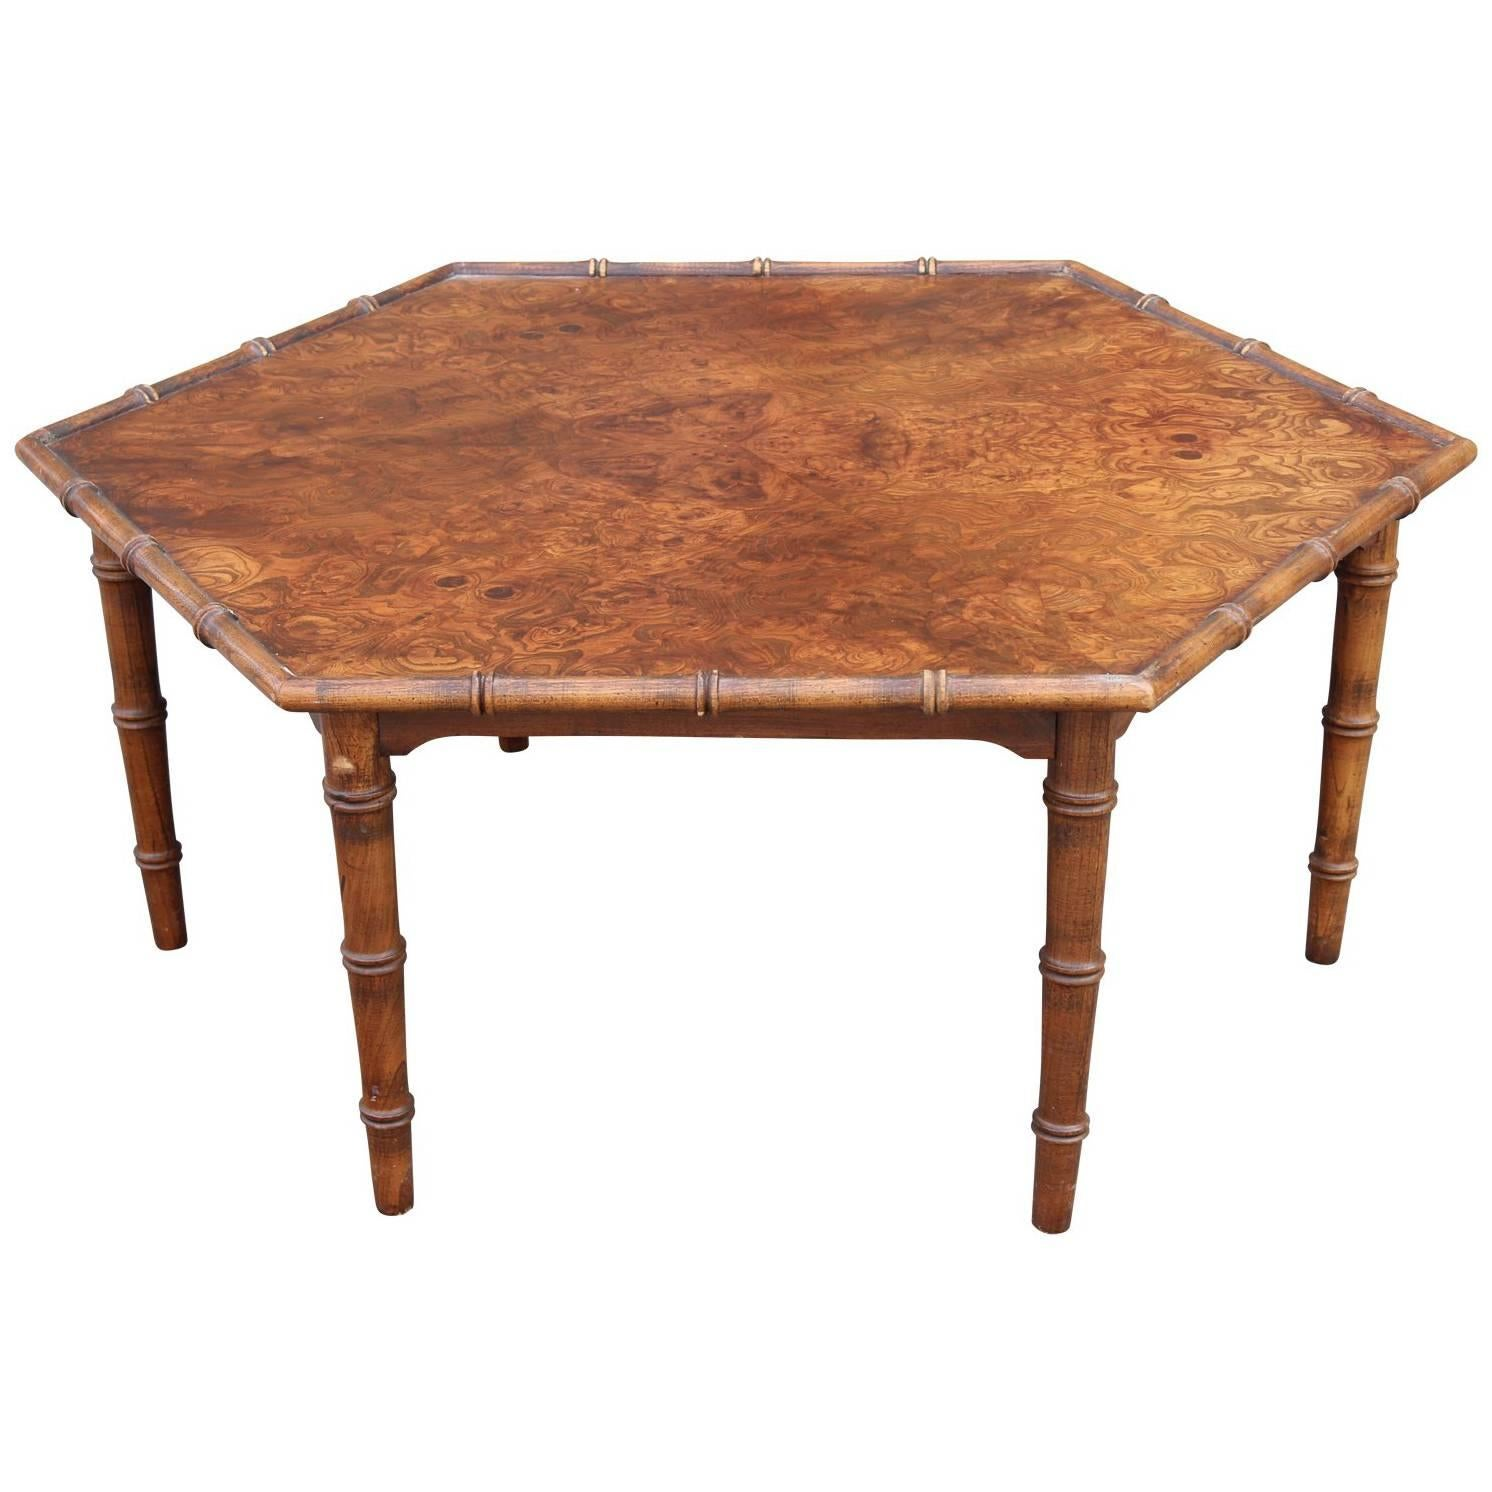 Hollywood Regency Coffee and Cocktail Tables 499 For Sale at 1stdibs